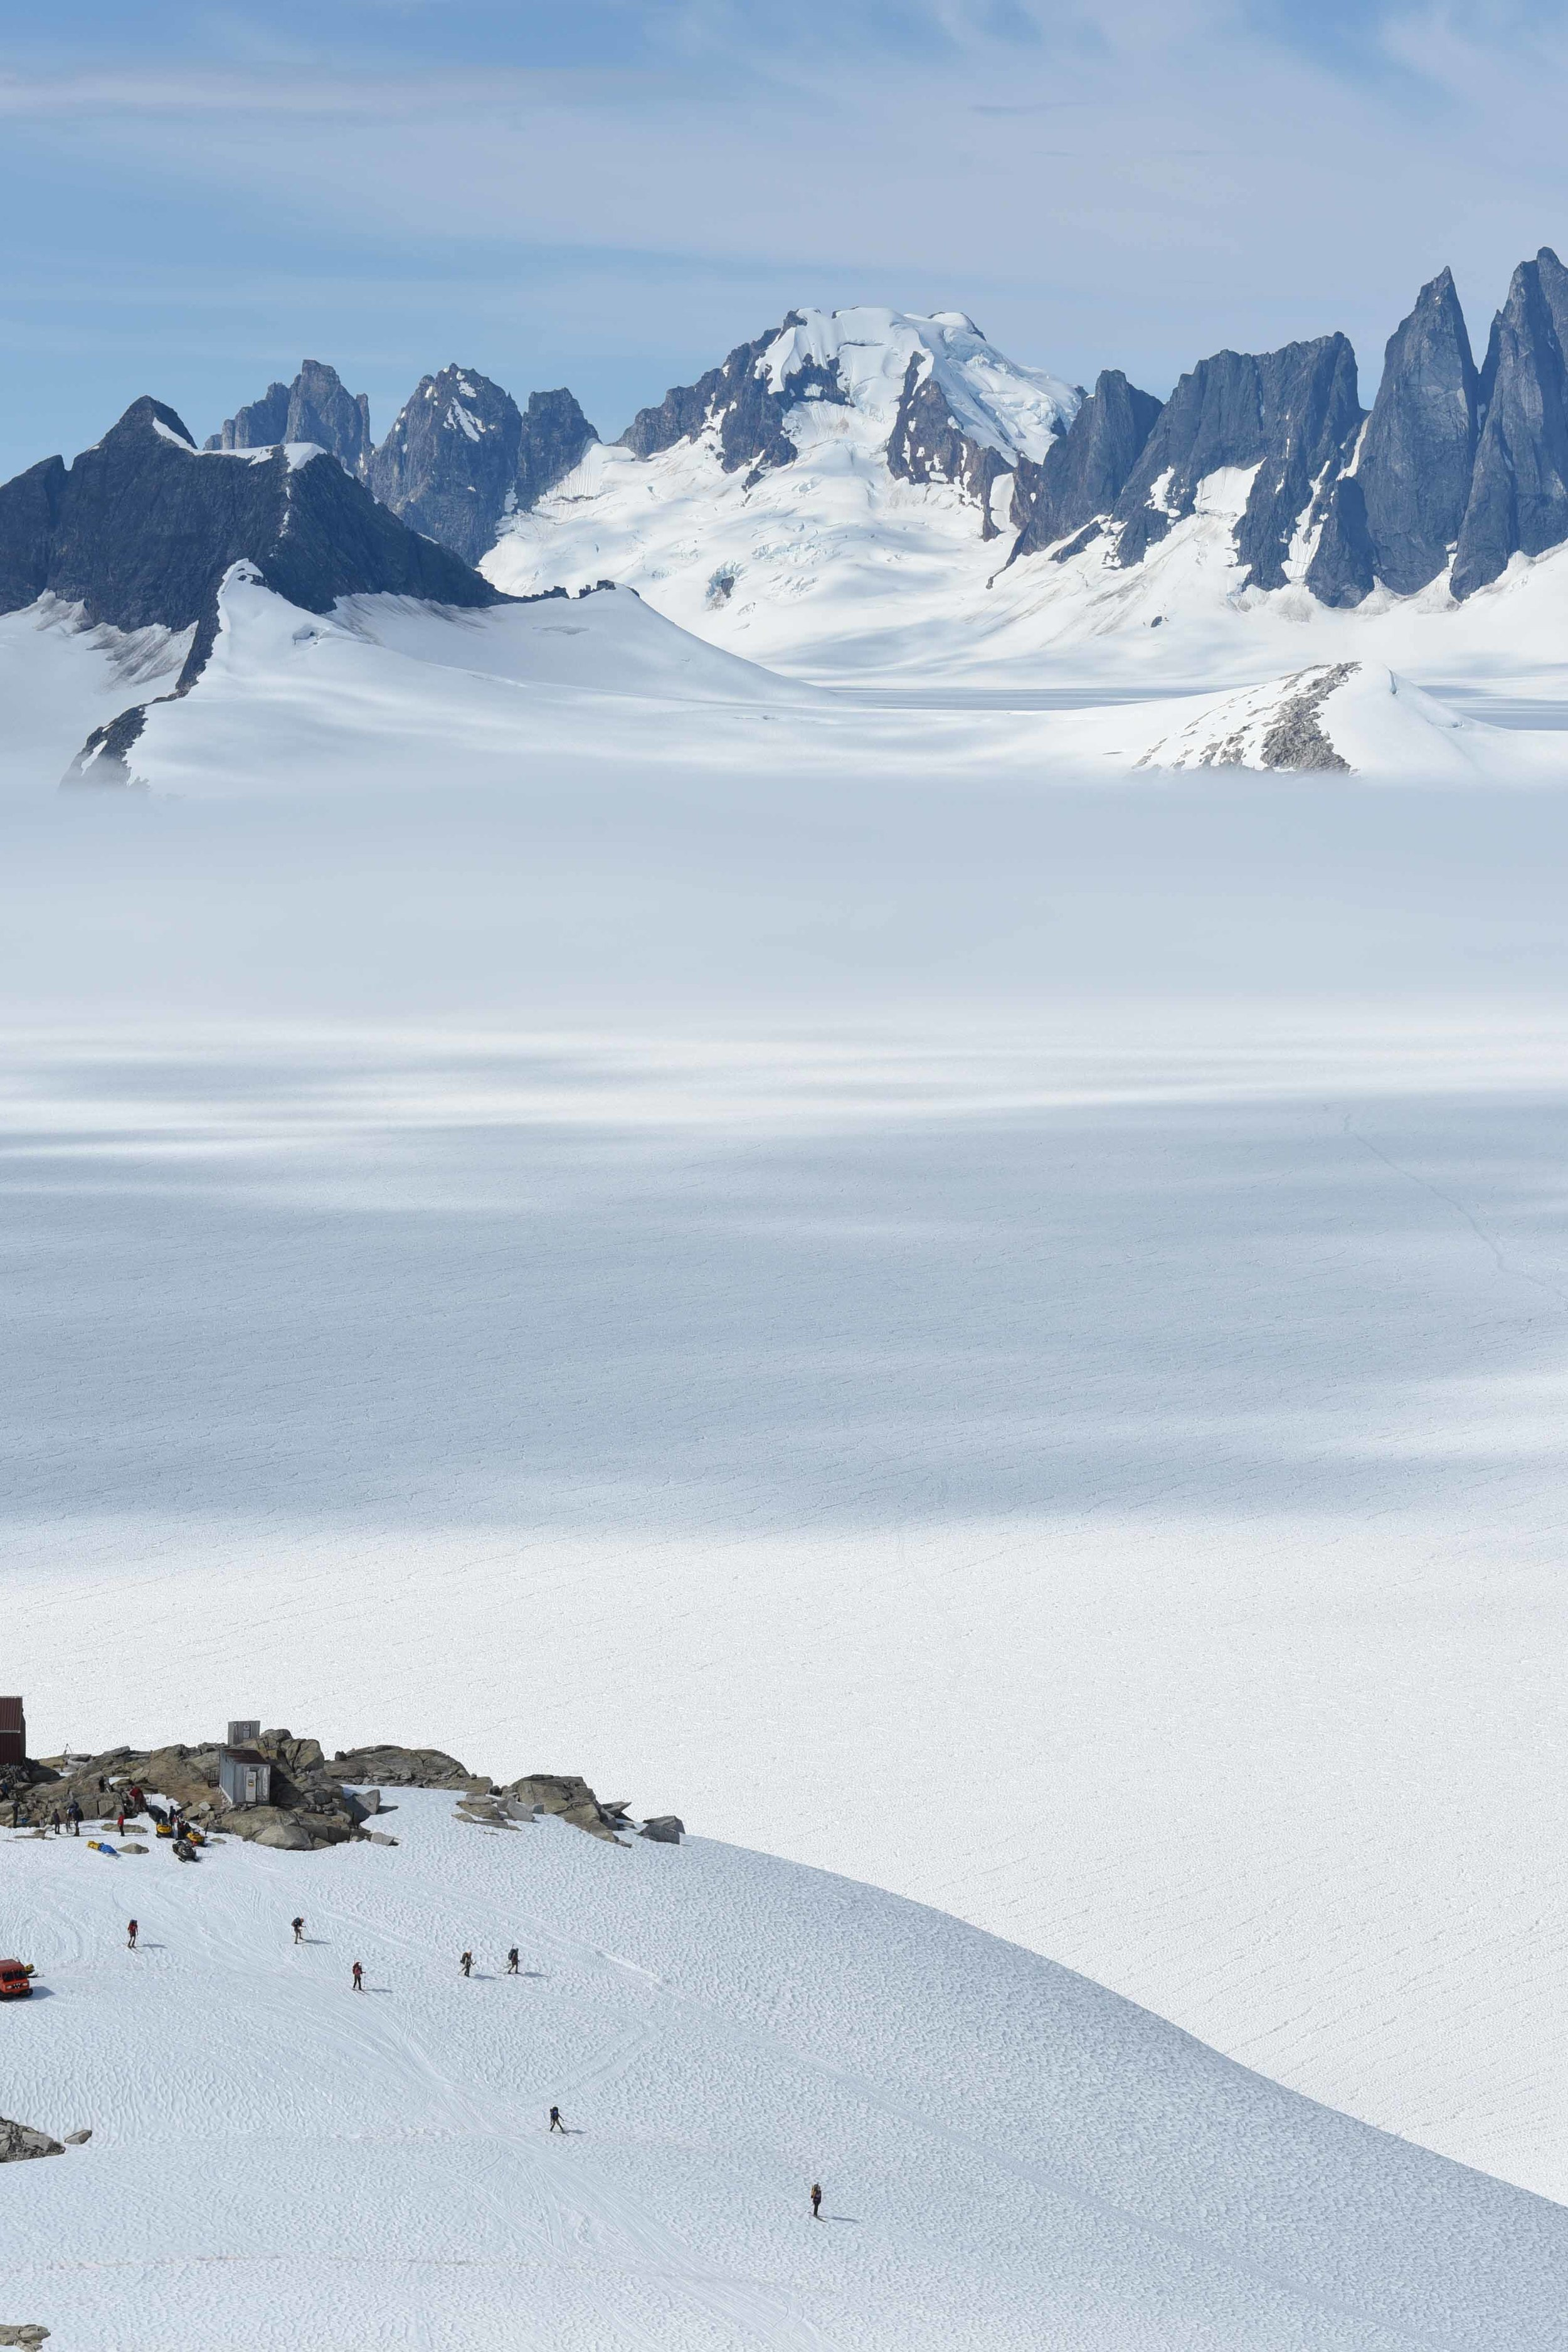 Tiny camps on islands of rock in fields of snow. Photo courtesy of PBJ Photography.